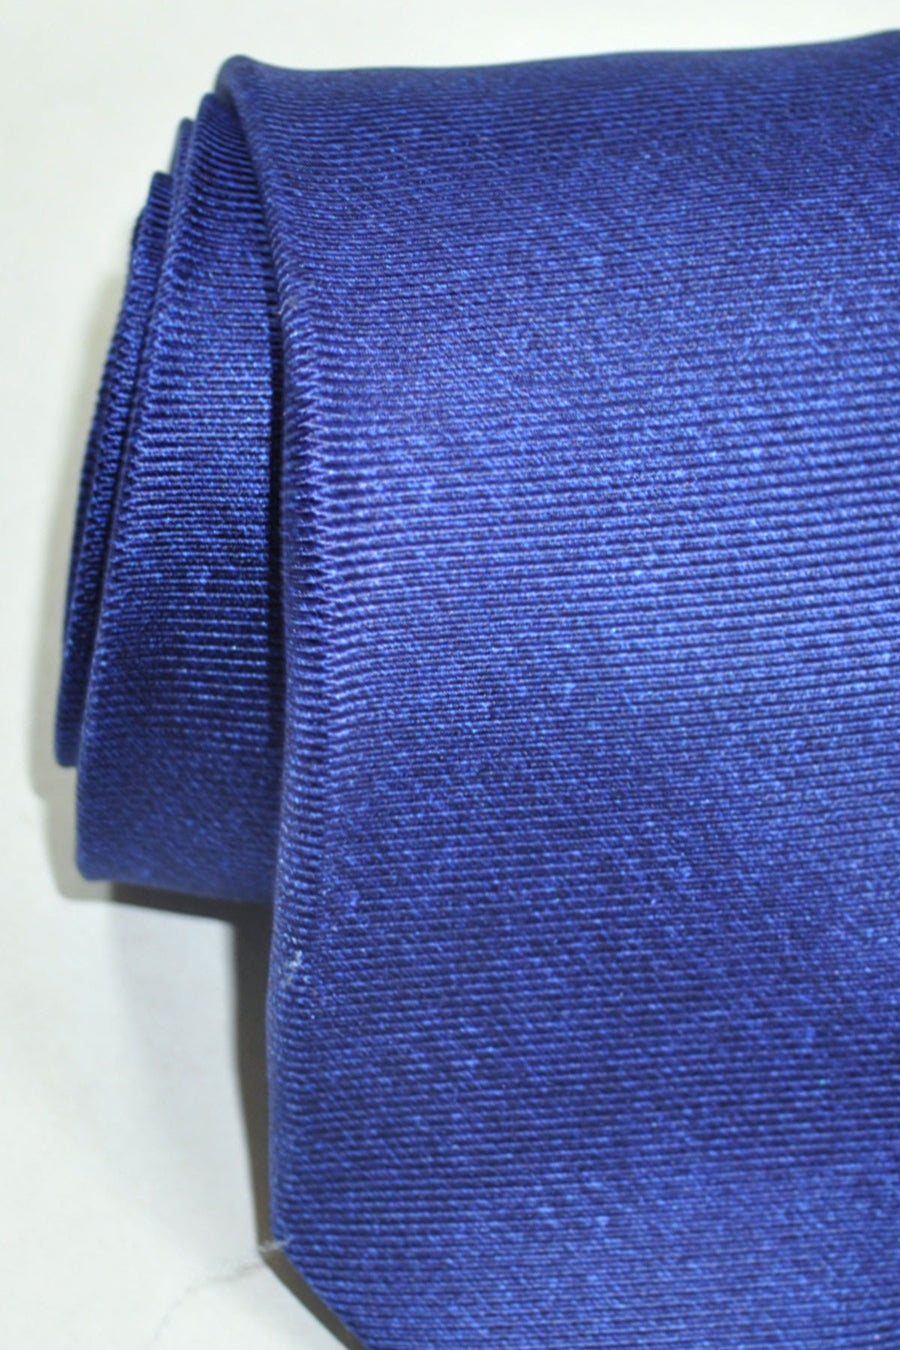 Barba Sevenfold Tie Royal Blue Solid Design